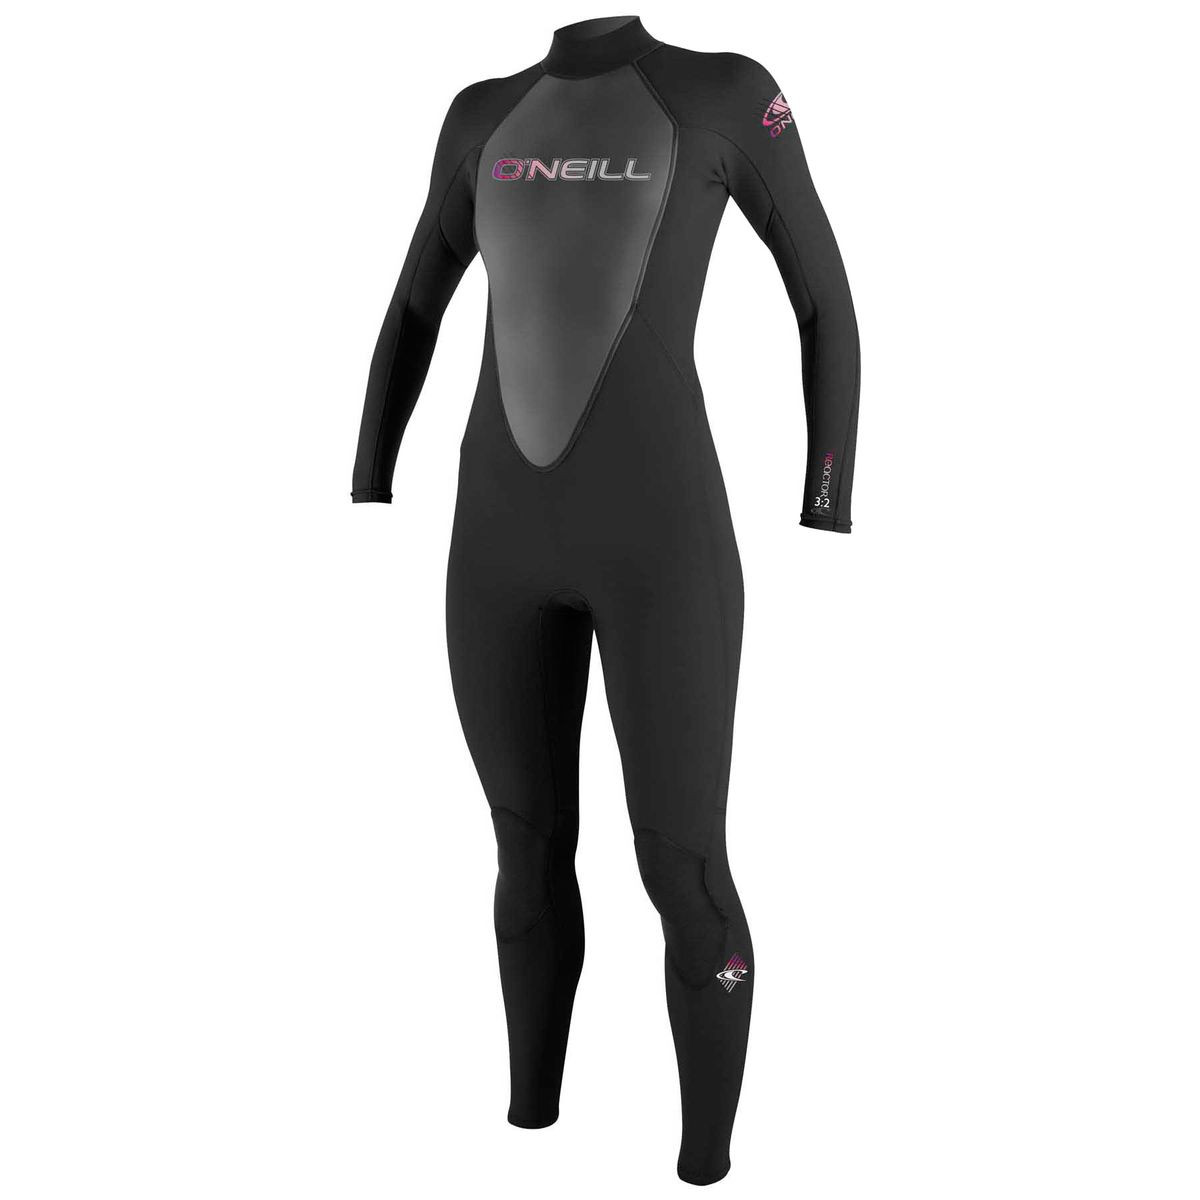 O'Neill Women's Reactor 3/2mm Back Zip Wetsuit - Black